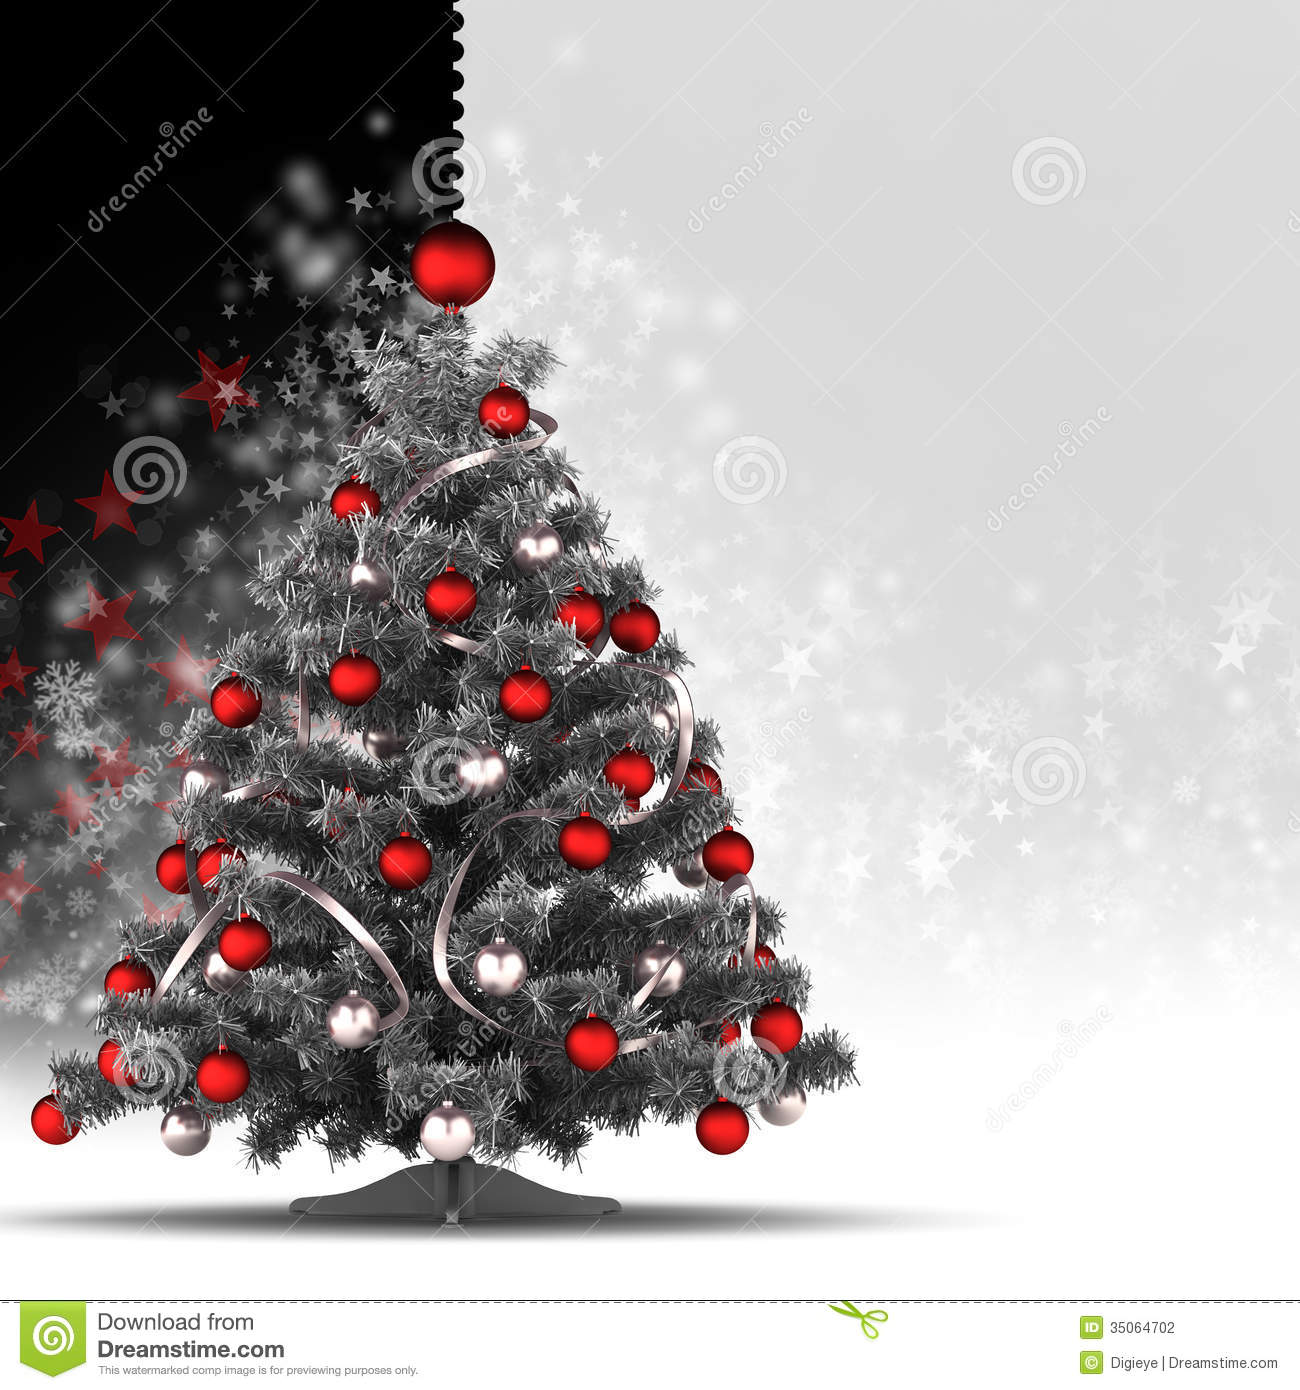 Christmas card template xmas tree on black and white background